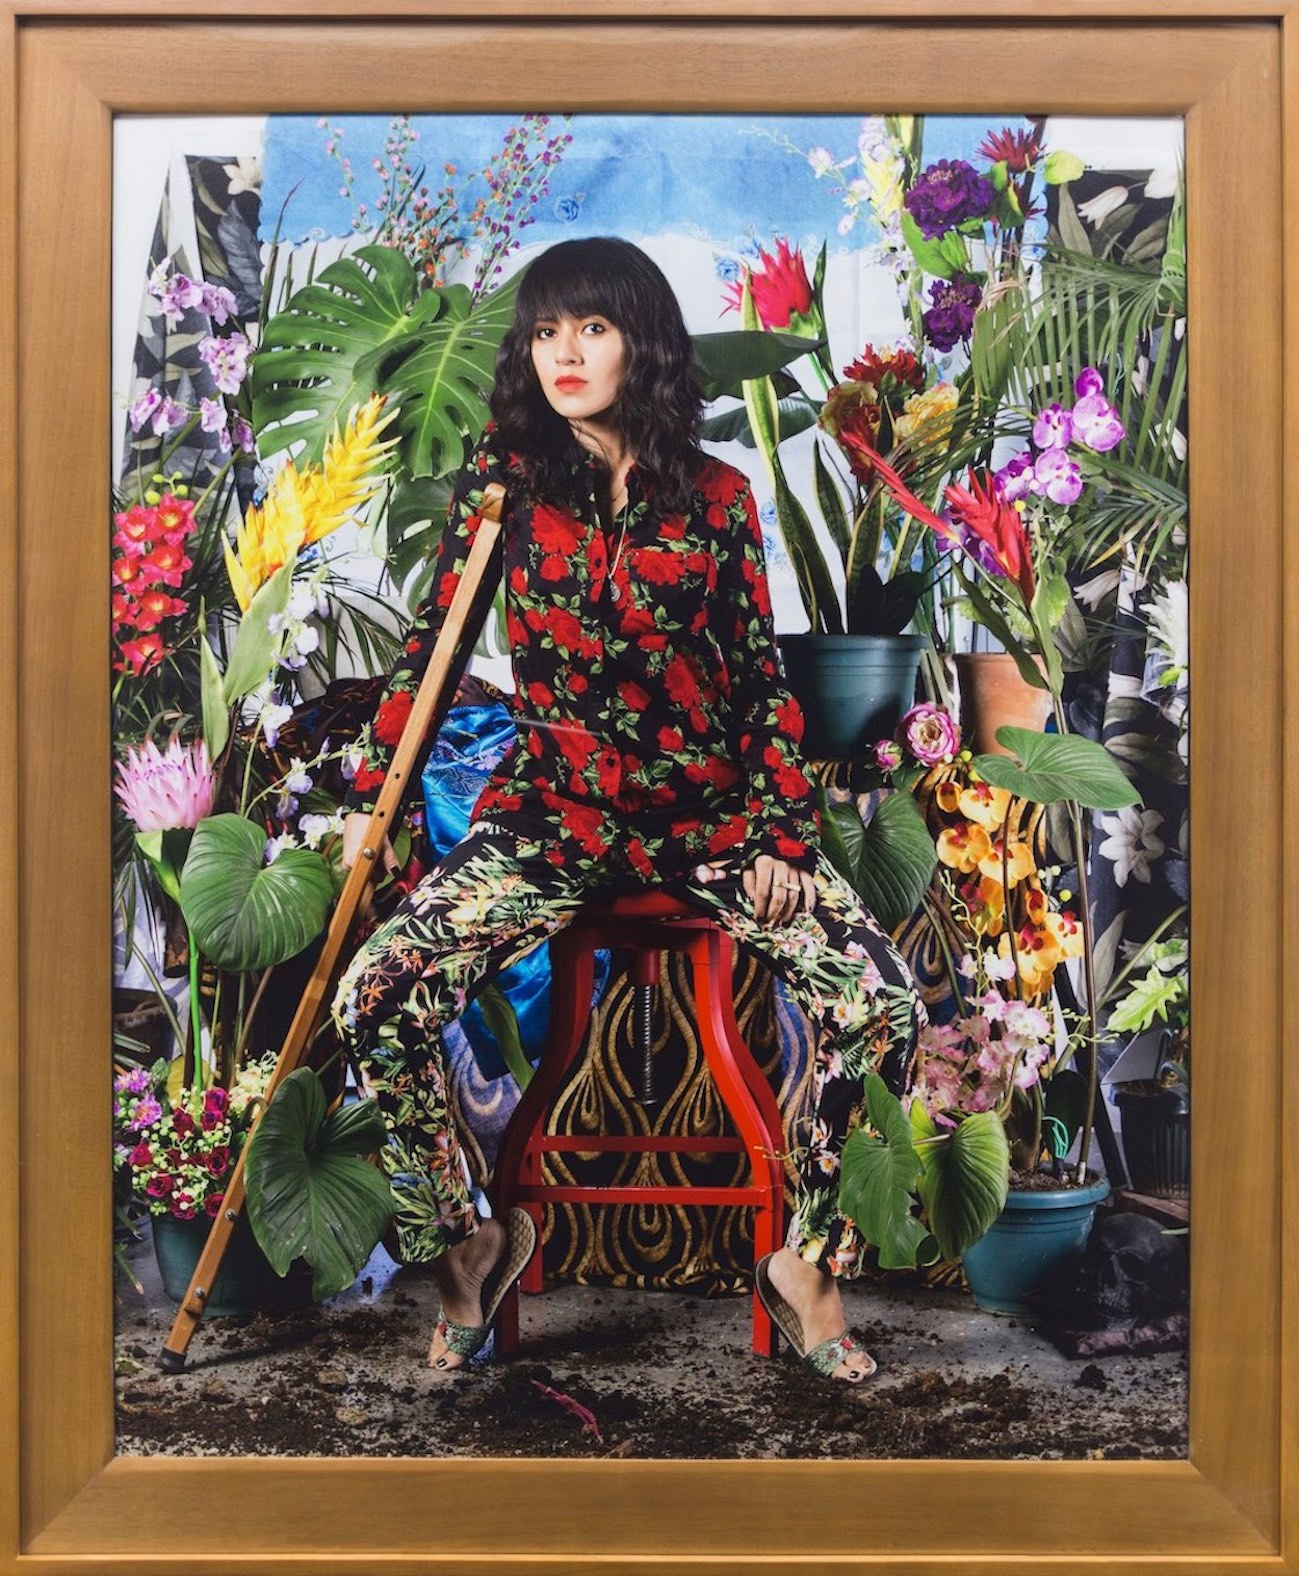 """Wawi Navarroza, '""""I Want To Live A Thousand More Years"""" (Self-Portrait After Dengue, with tropical plants and fake flowers)', 2016, archival pigment print, 127 x 101.6cm. Image courtesy of Silverlens."""